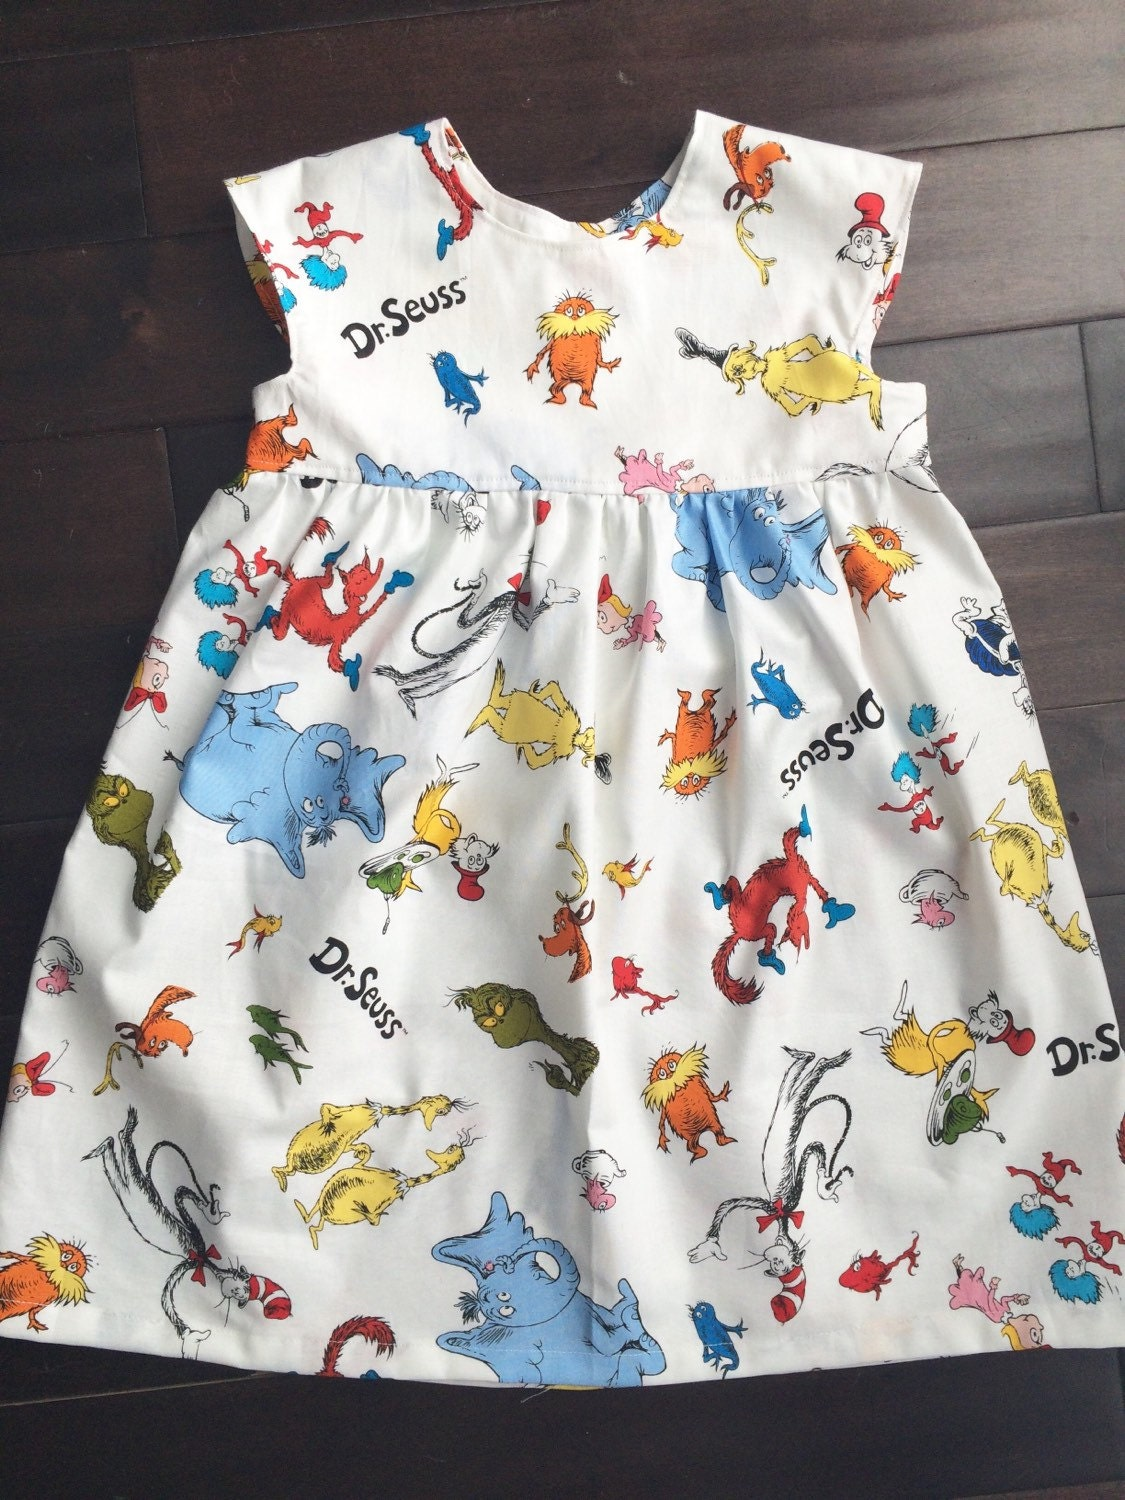 Dr Seuss Dress Girls Dresses Baby Girls Clothing By Suzykid